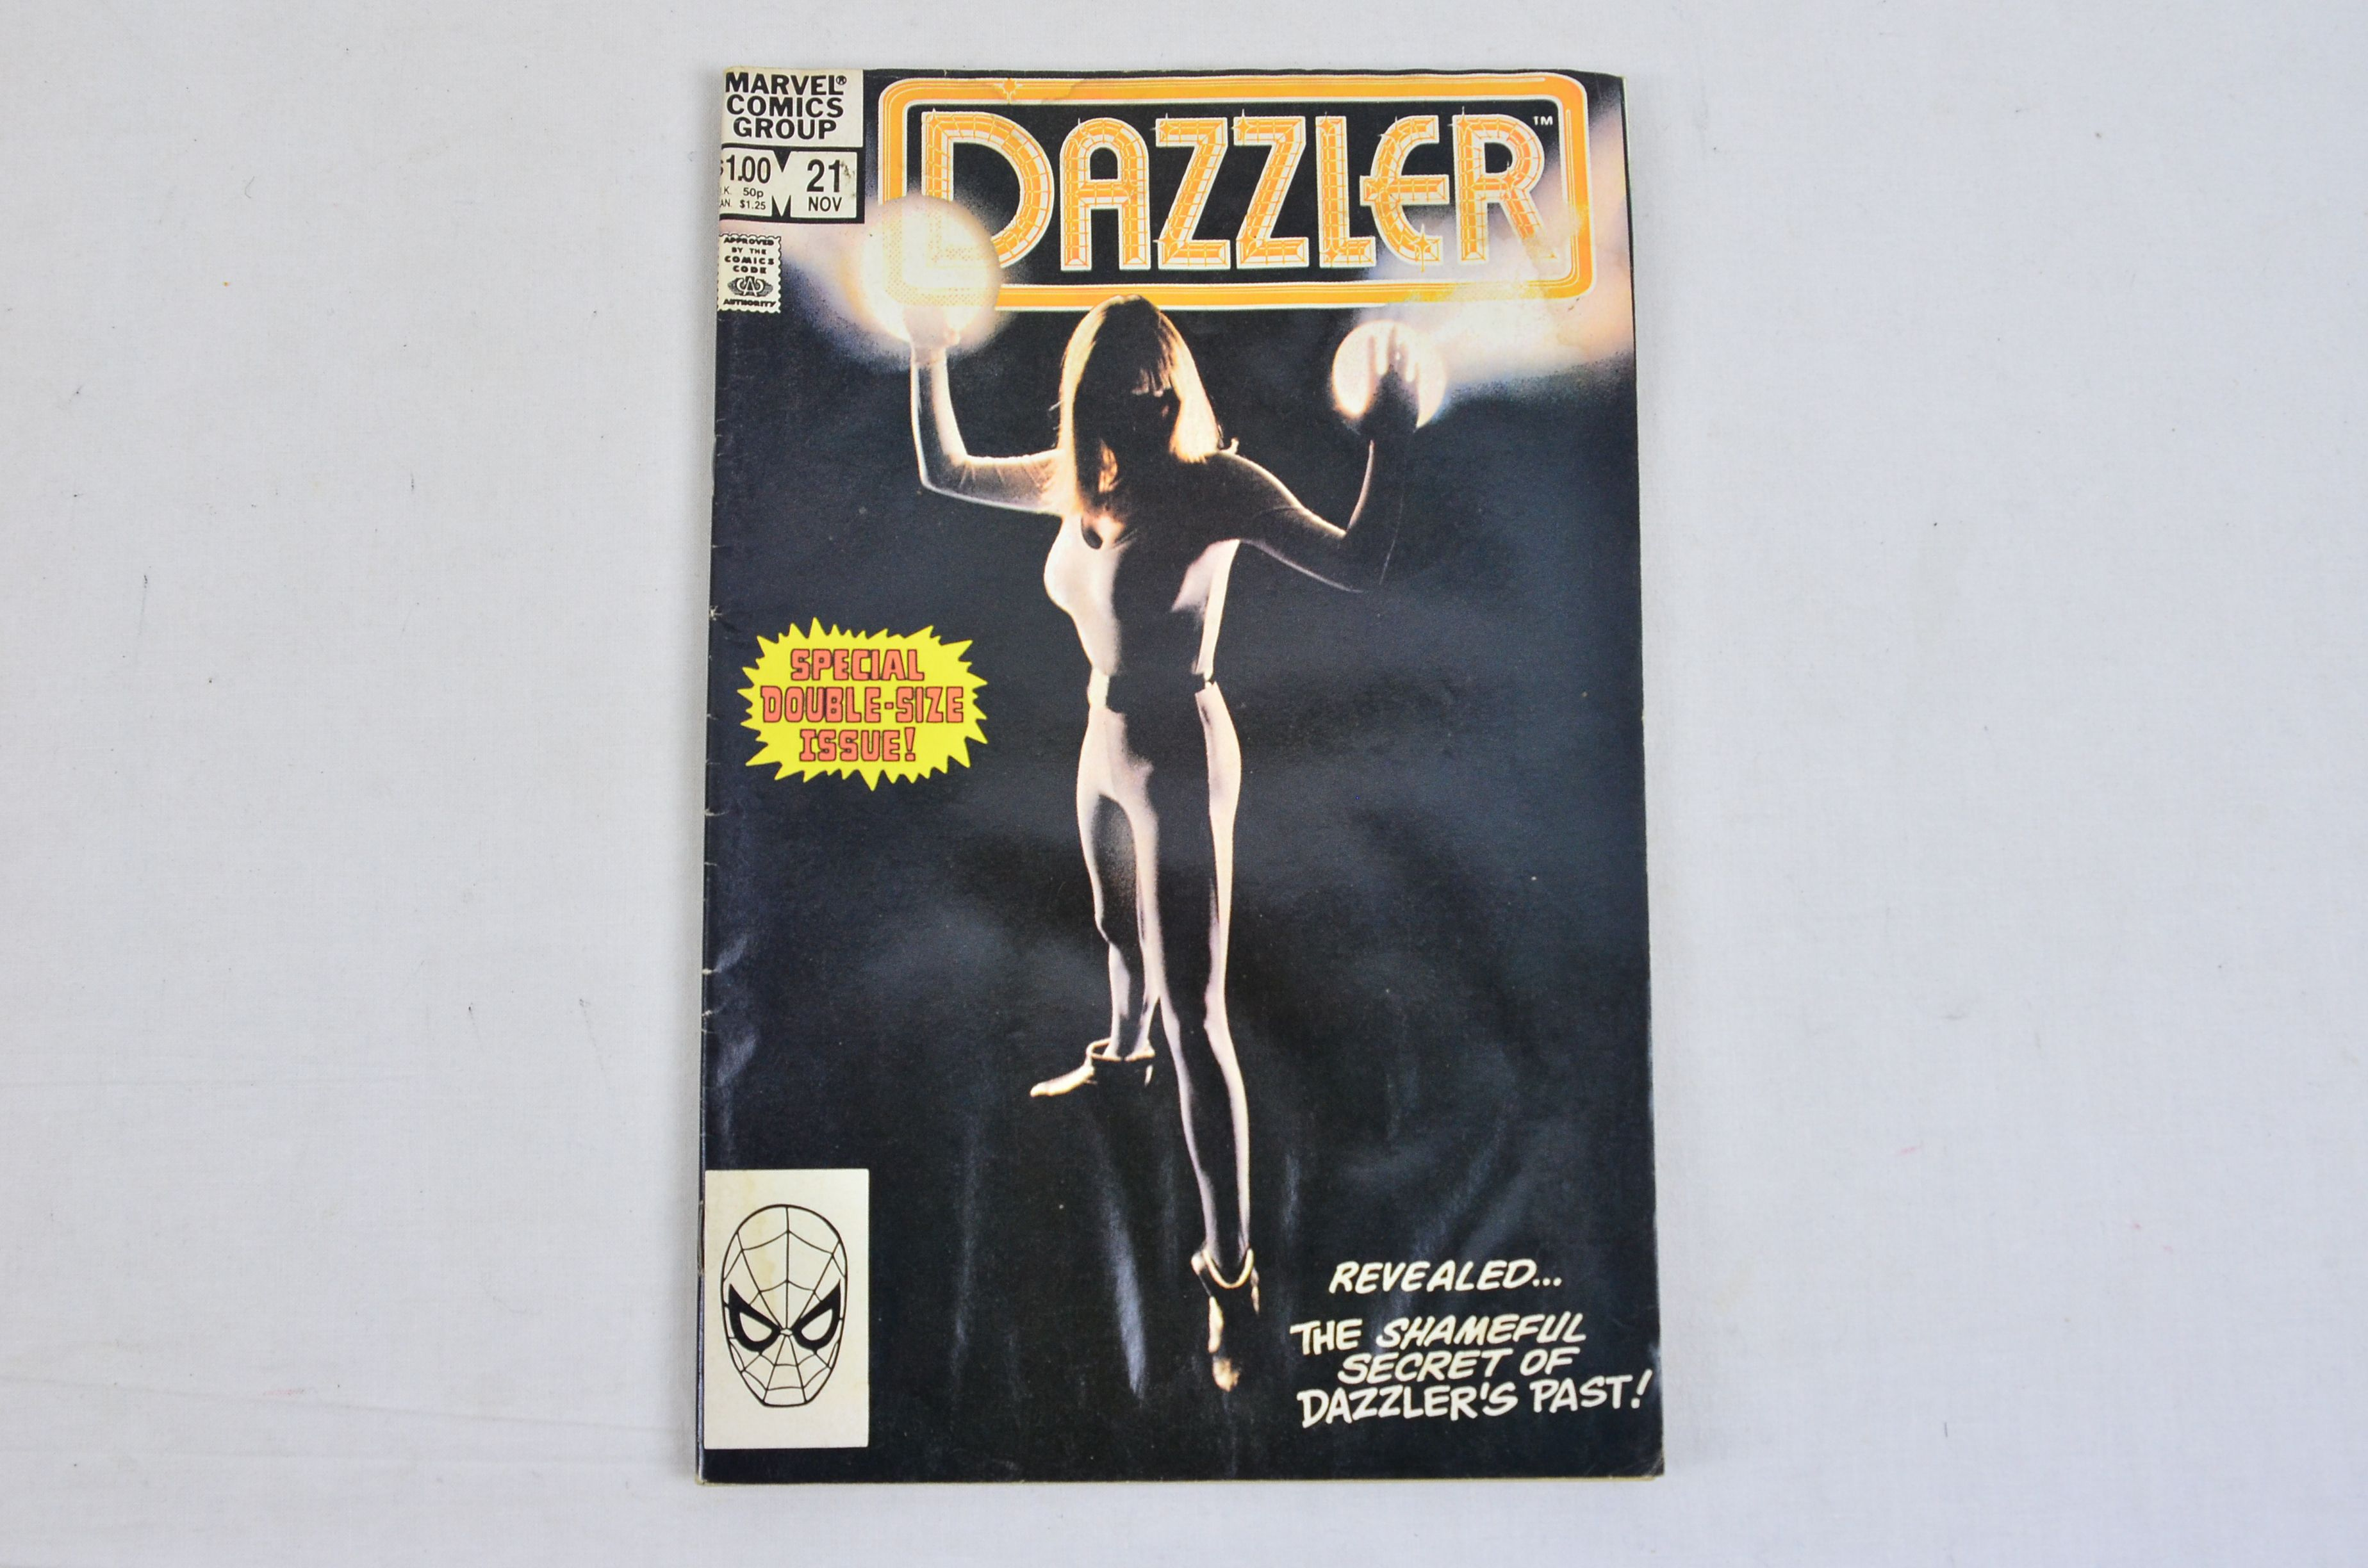 Vintage Marvel Comics Group Dazzler Collectable Comic Thumbnail 3